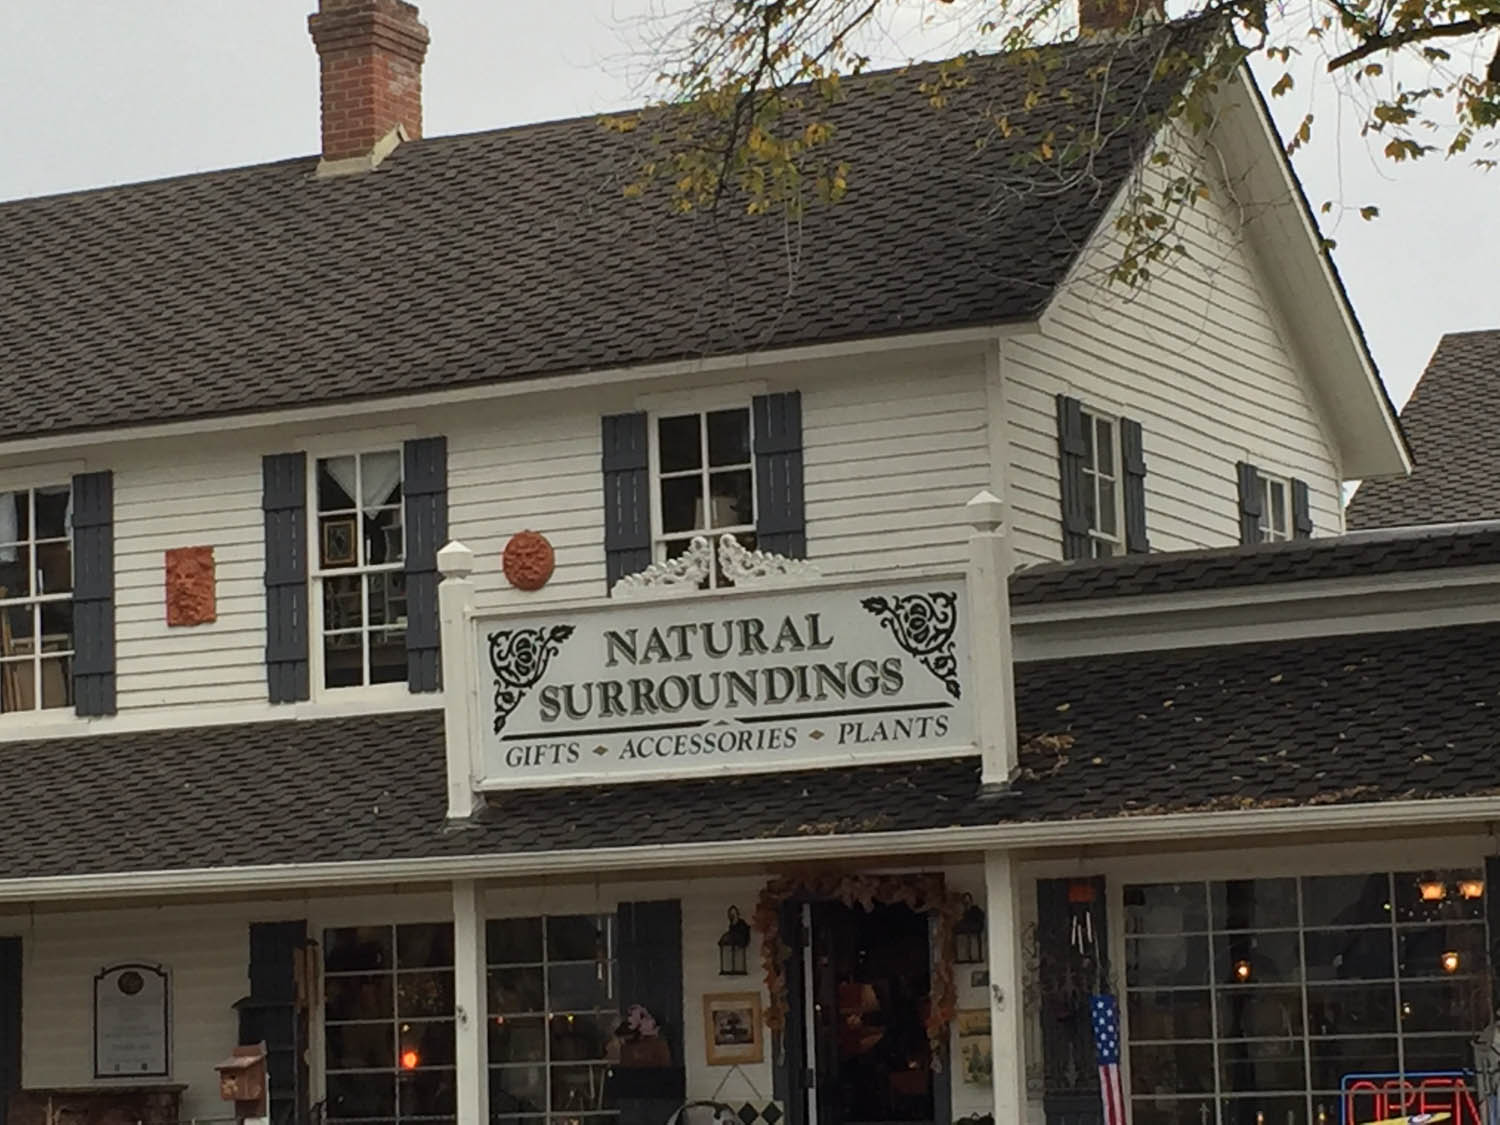 Natural Surroundings store in historic old downtown Littleton, CO